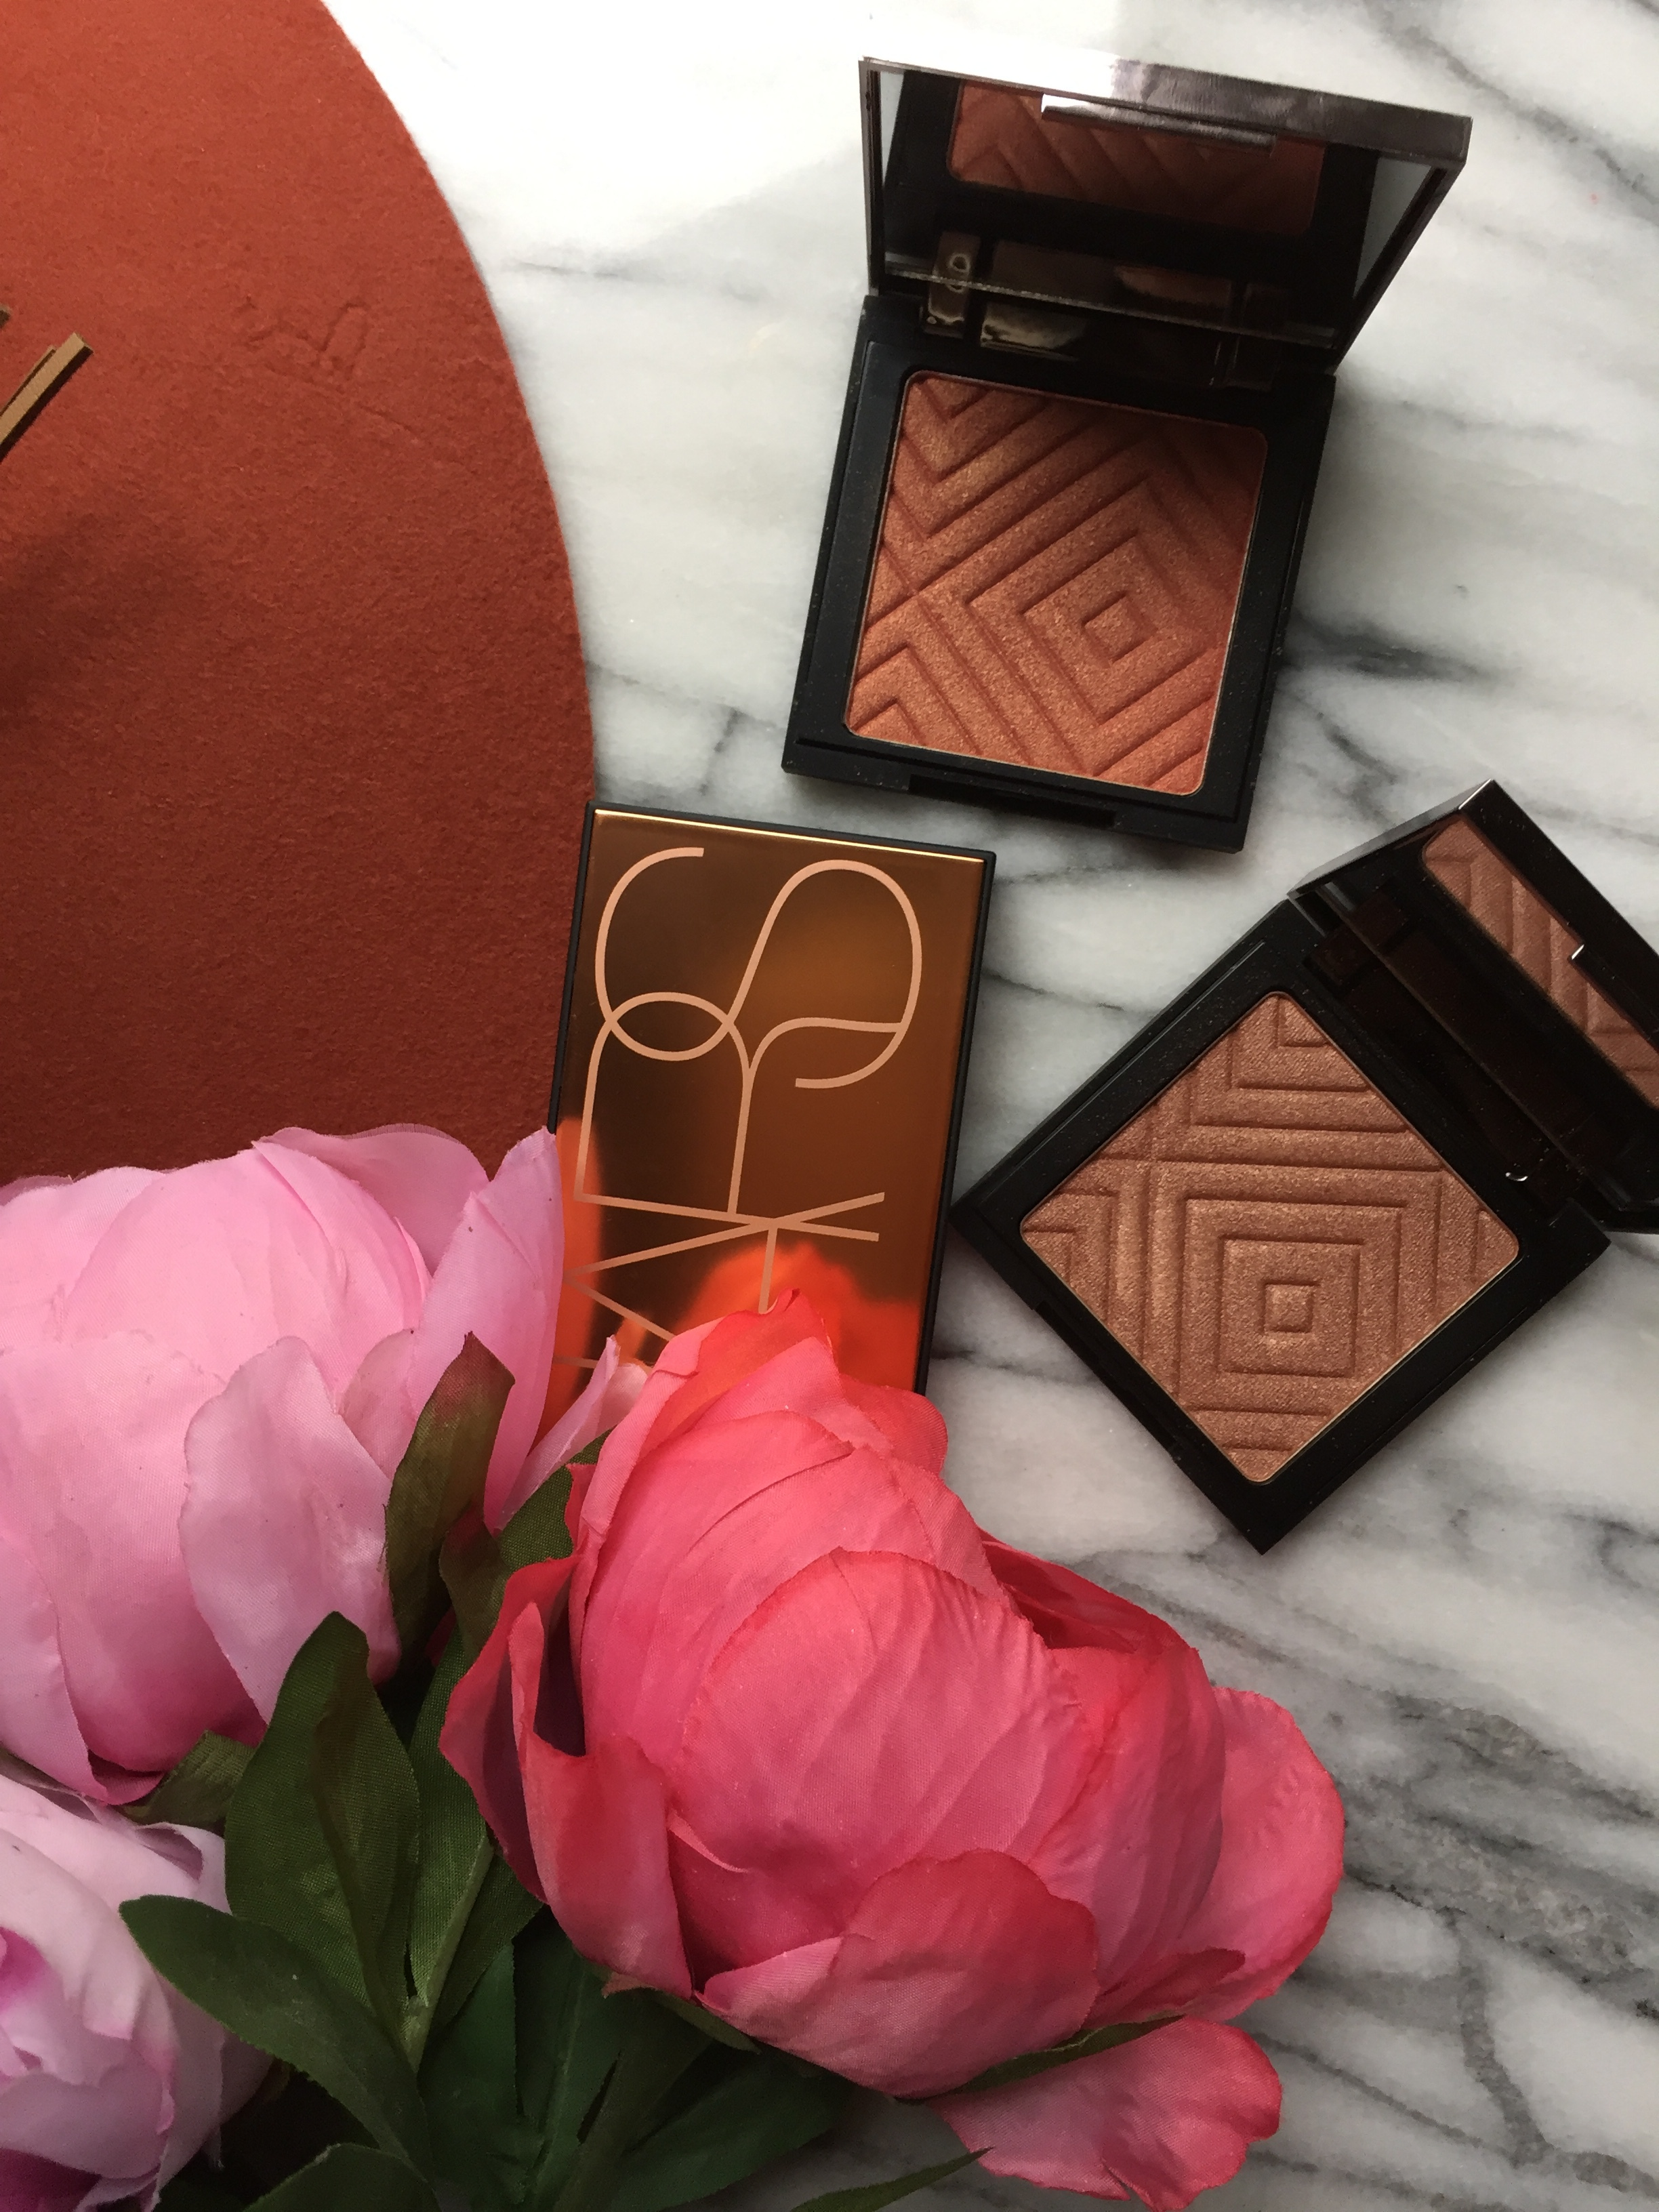 Nars Banc De Sable and Makeup Geek Ablaze and IgniteHighlighters